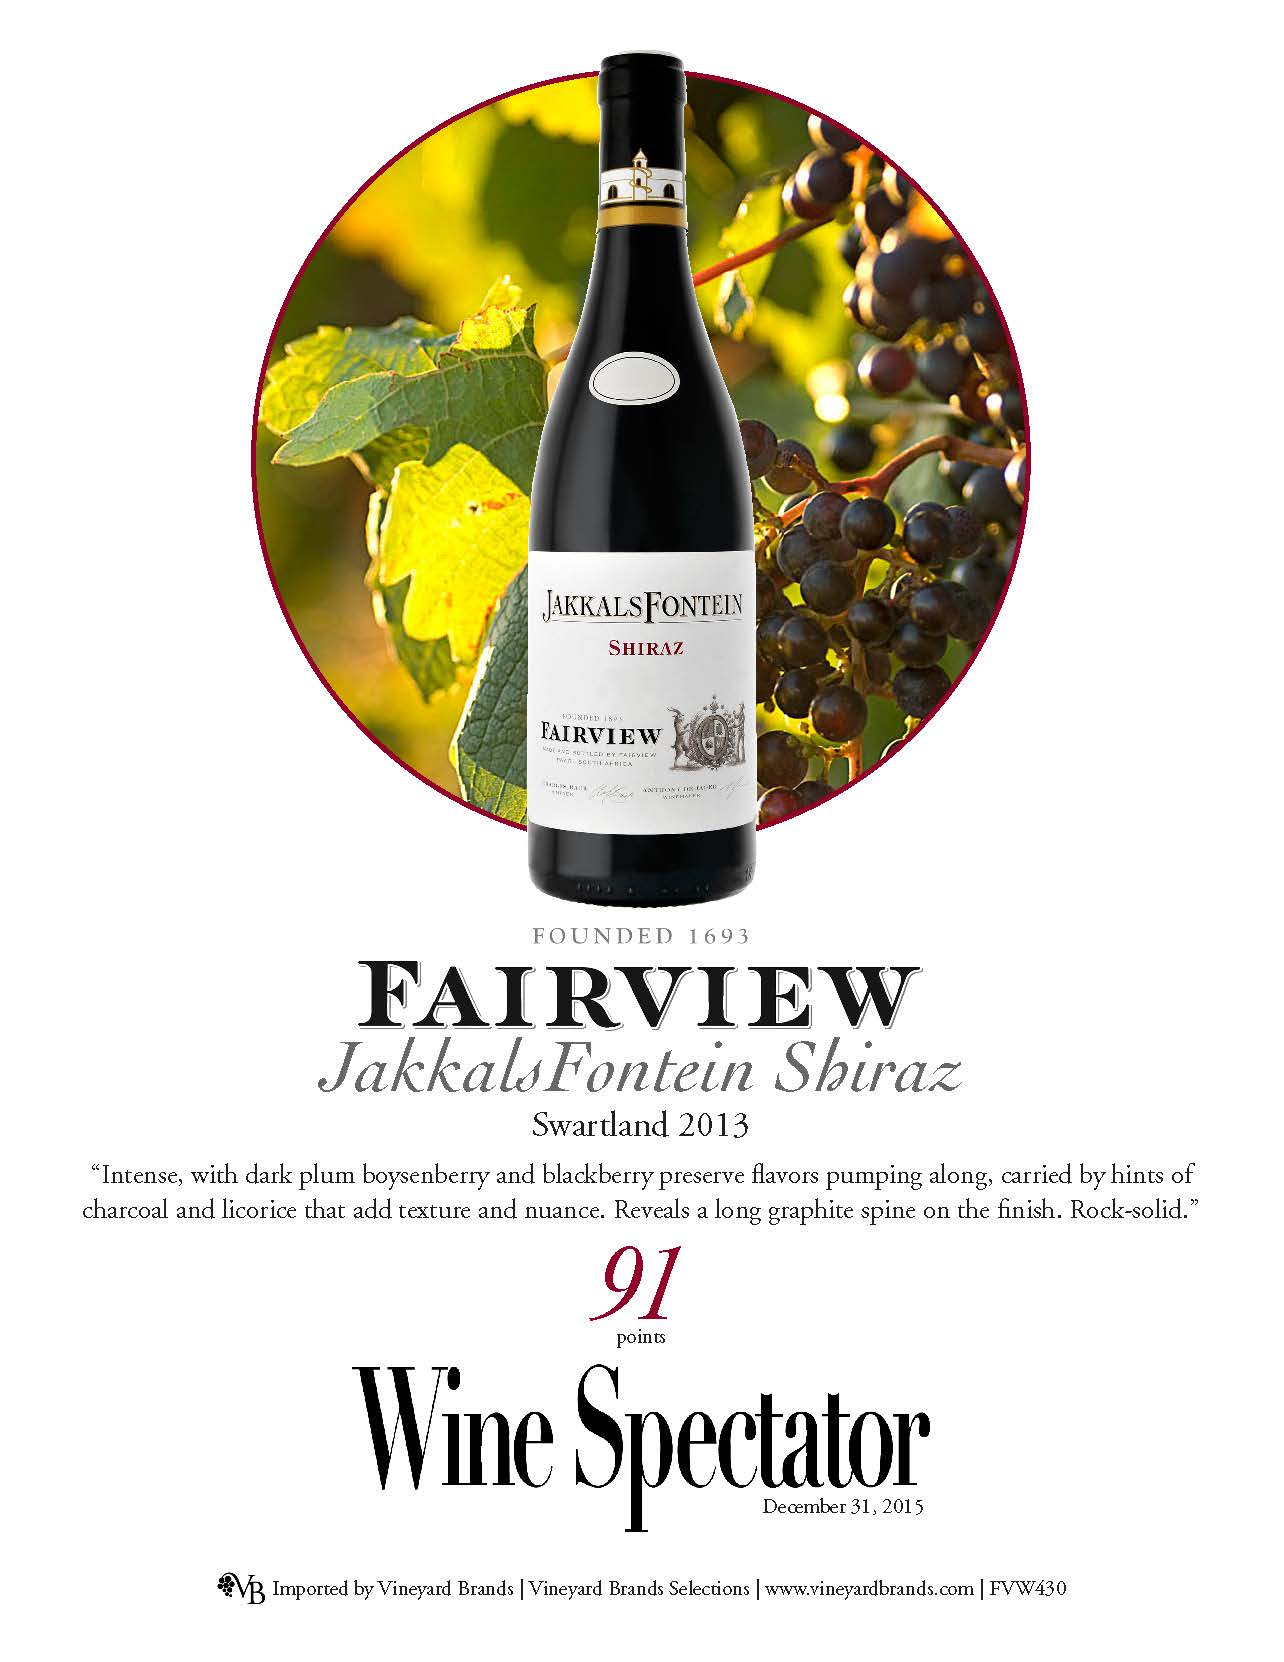 Fairview Jackals Fontein Shiraz